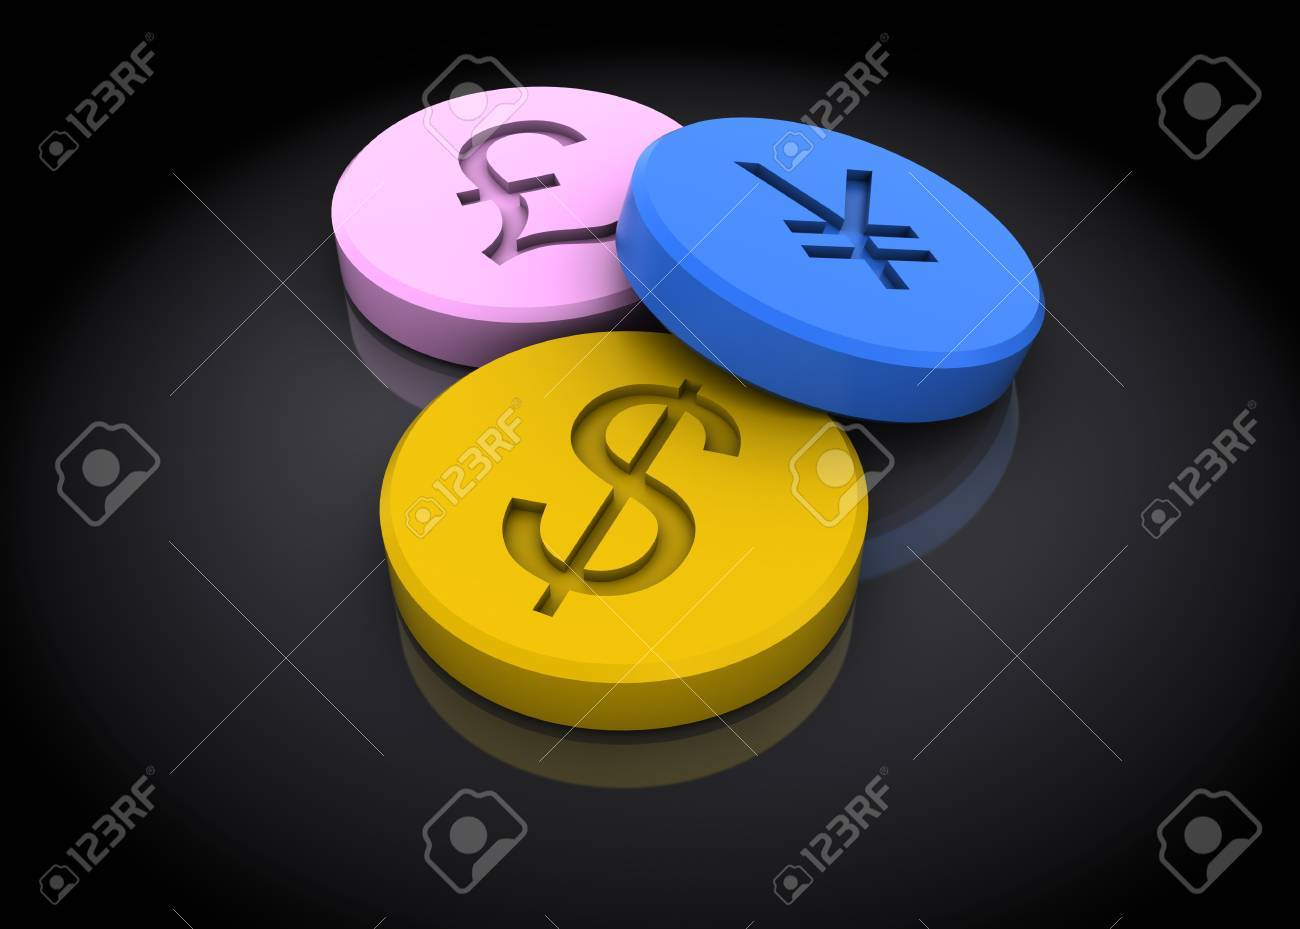 abstract 3d illustration of tablets with currency signs, over dark background Stock Illustration - 23302375